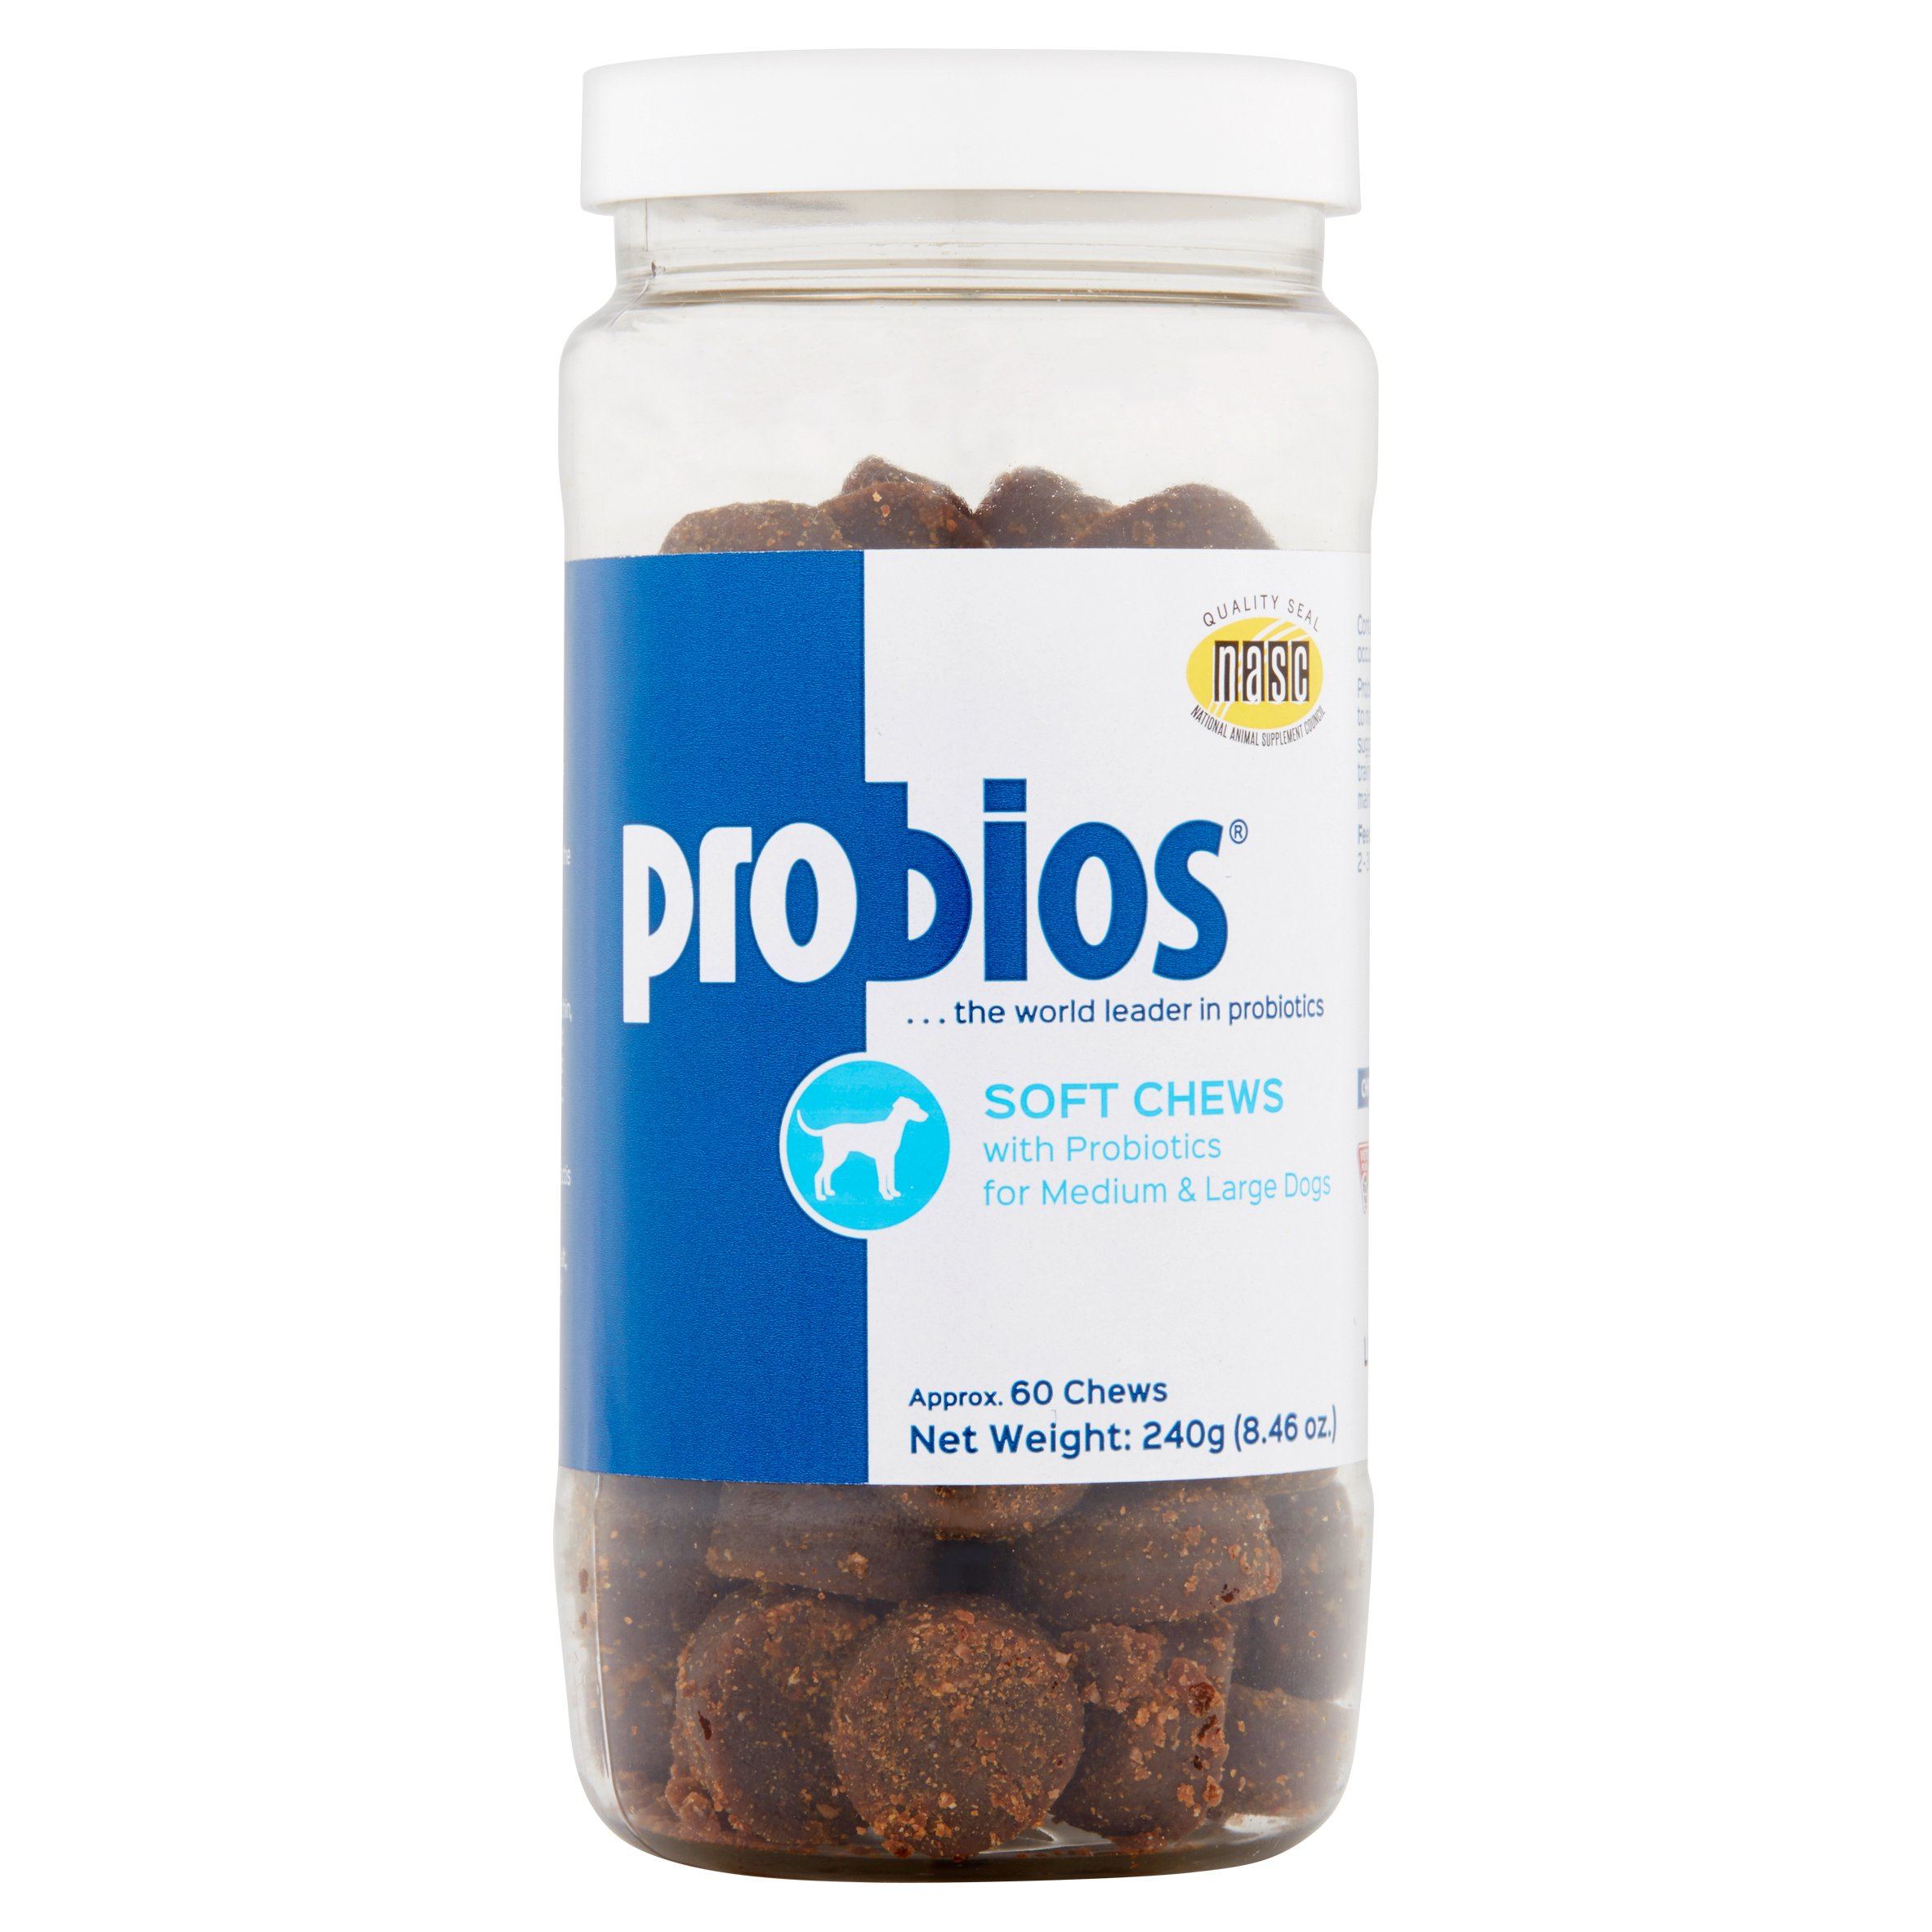 Probios Soft Chews with Probiotics for Medium & Large Dogs, 60 count, 8.46 oz